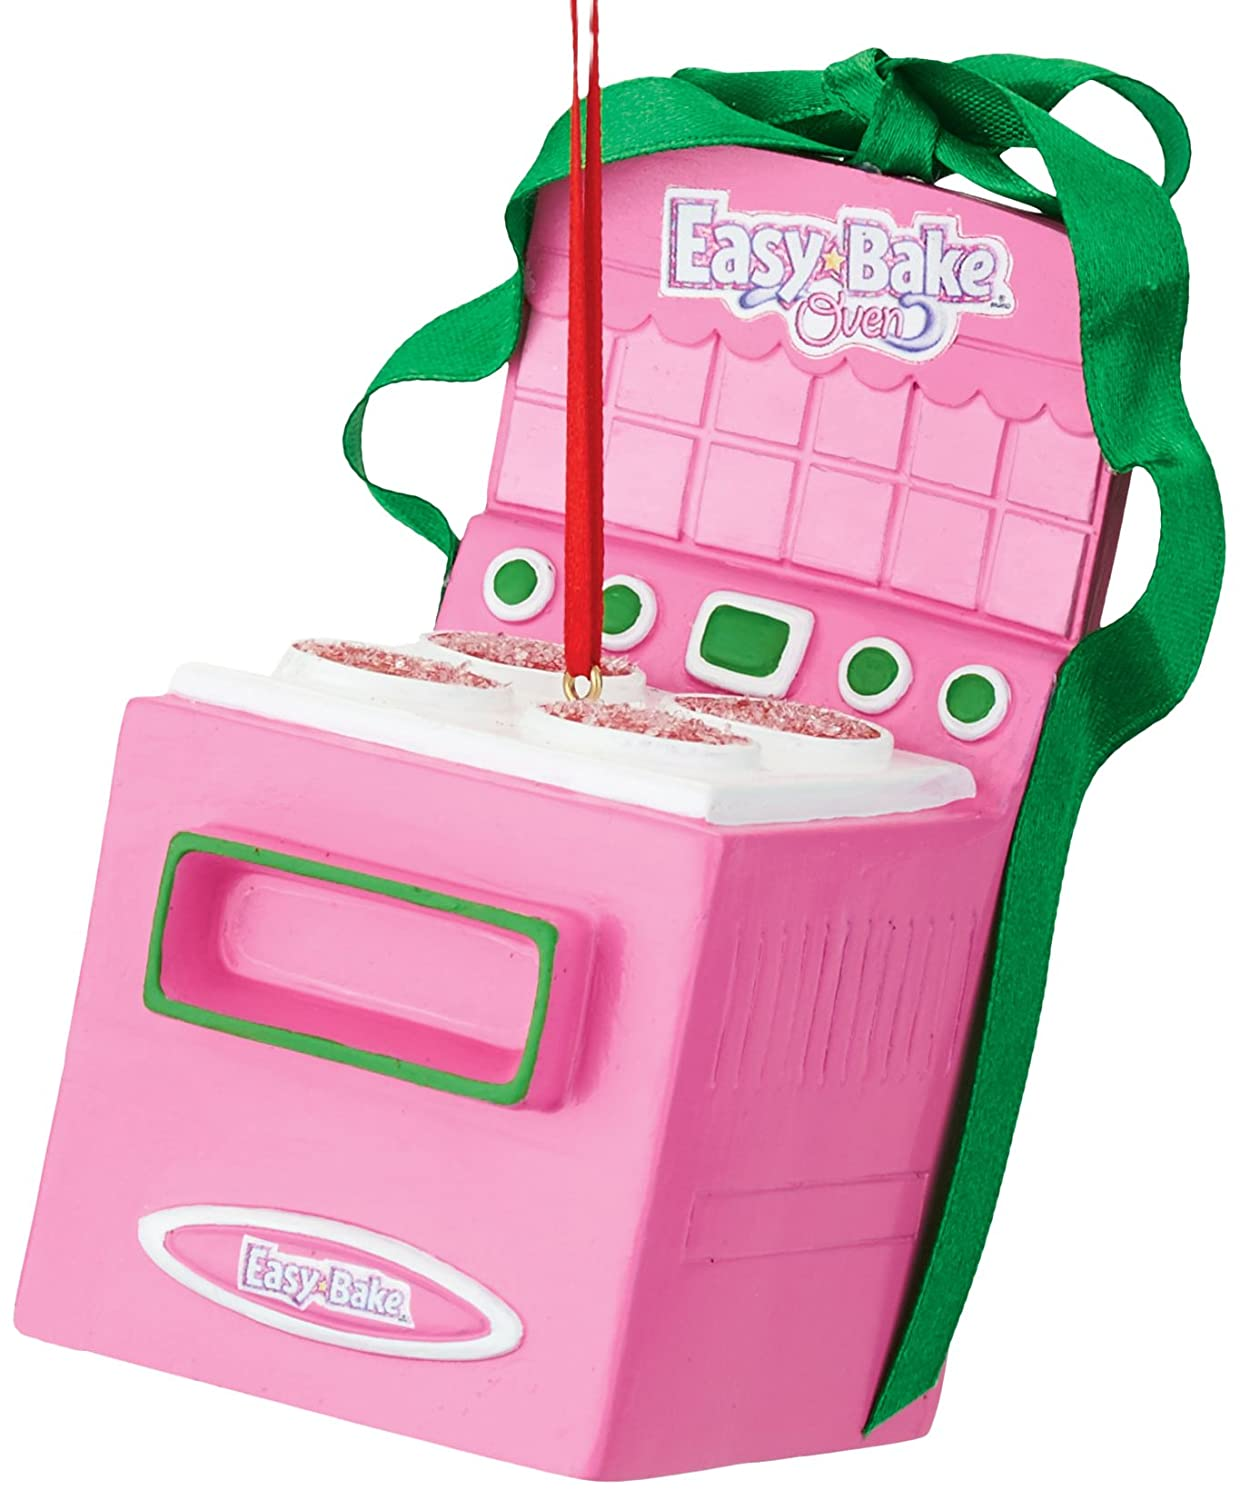 Department 56 Hasbro Easy Bake Oven Ornament